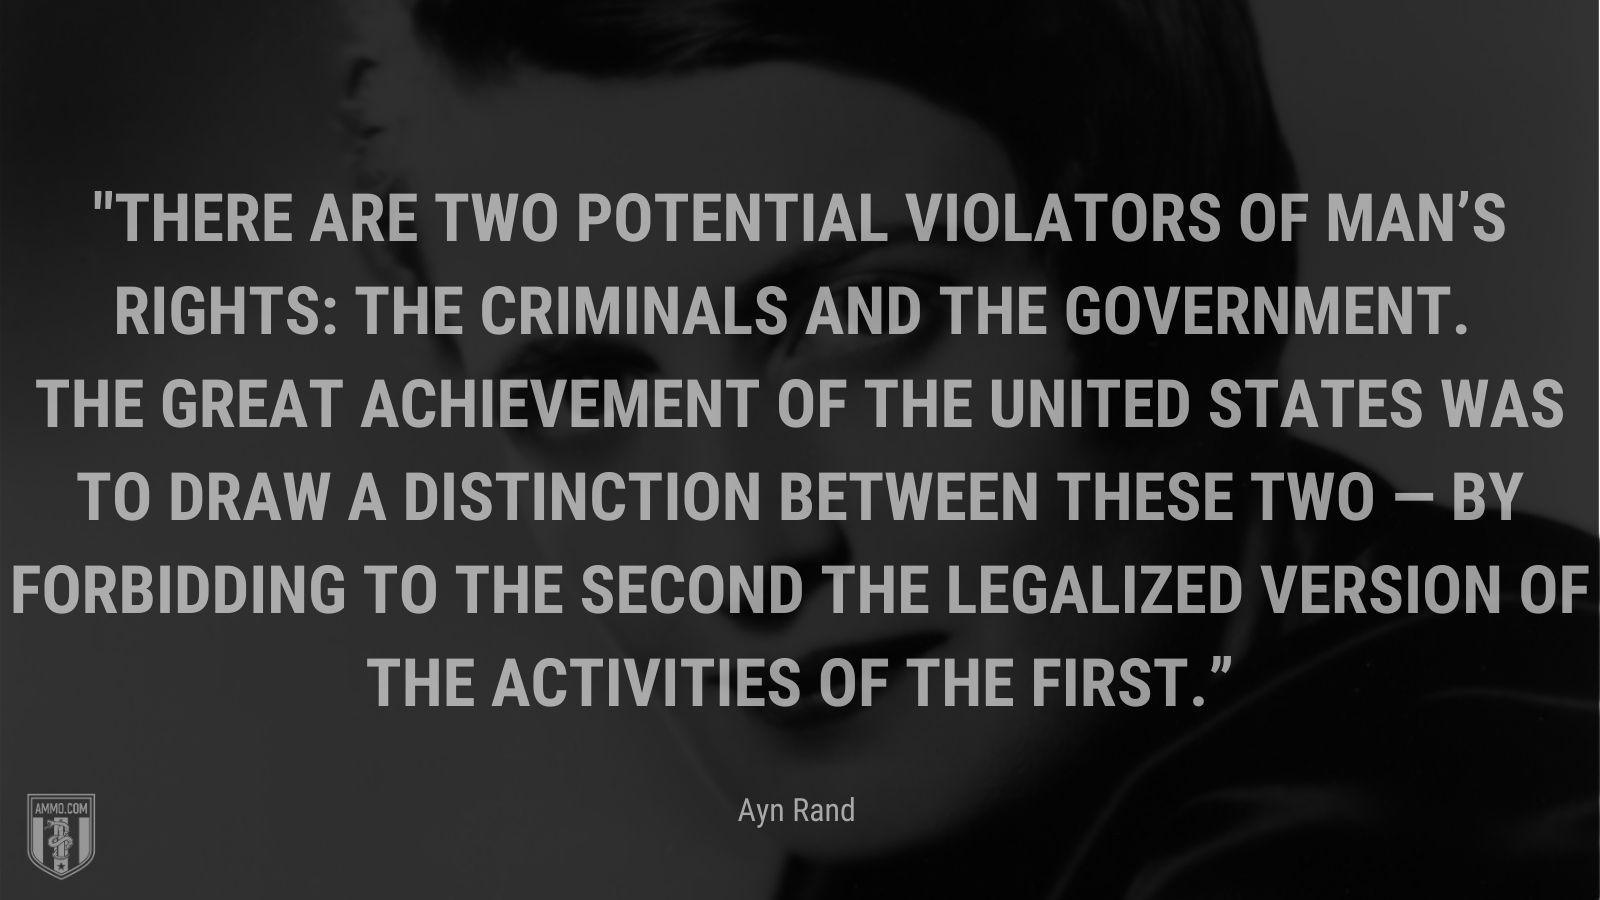 """""""There are two potential violators of man's rights: the criminals and the government. The great achievement of the United States was to draw a distinction between these two — by forbidding to the second the legalized version of the activities of the first."""" - Ayn Rand"""